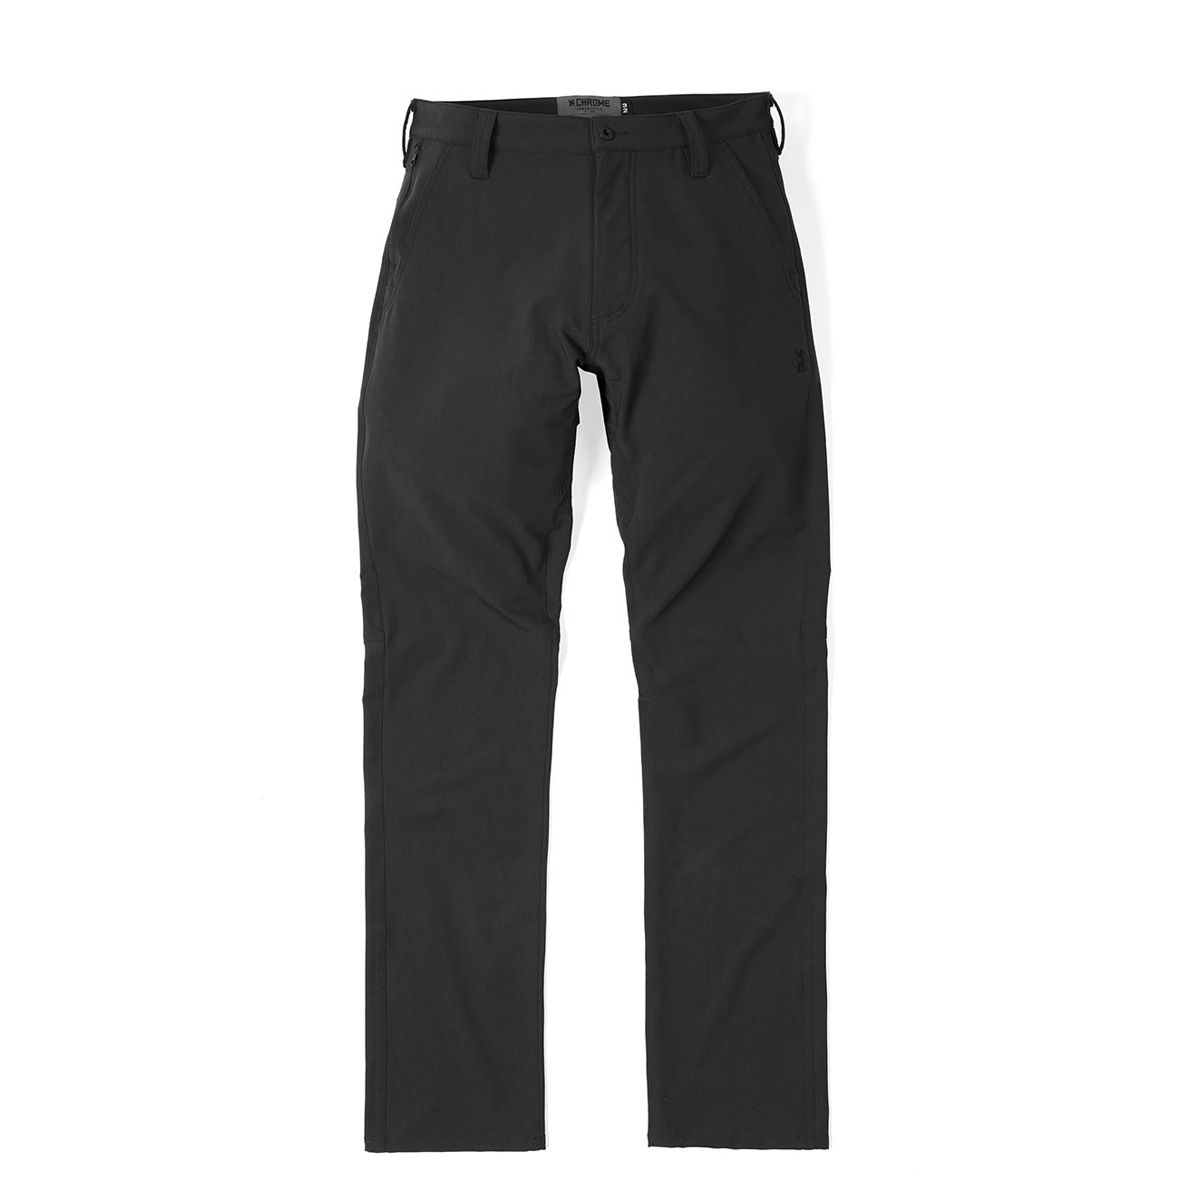 Brannan Riding Pants